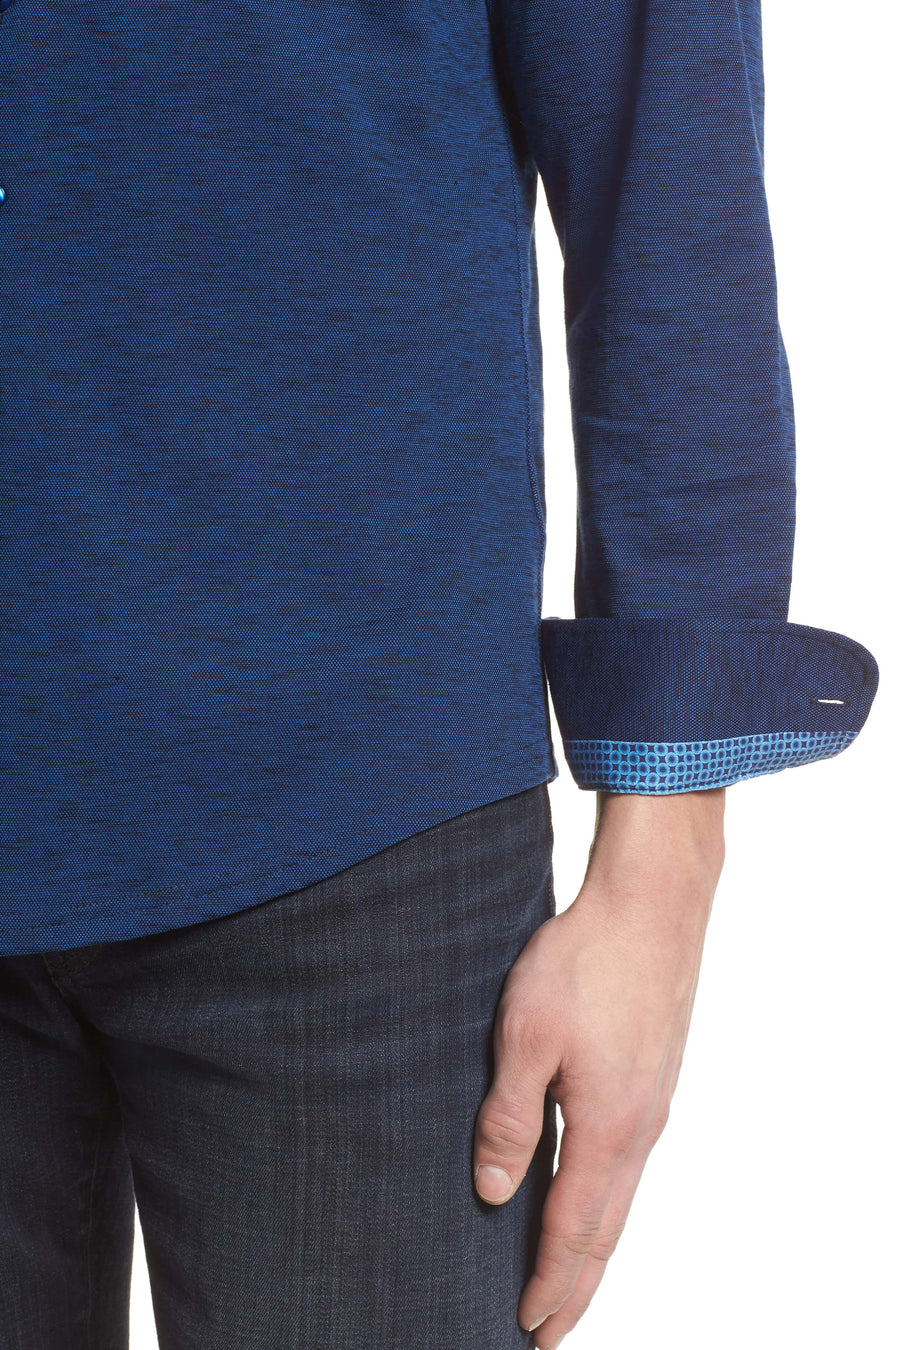 Flame Knit Long Sleeve - Navy - Pavilion